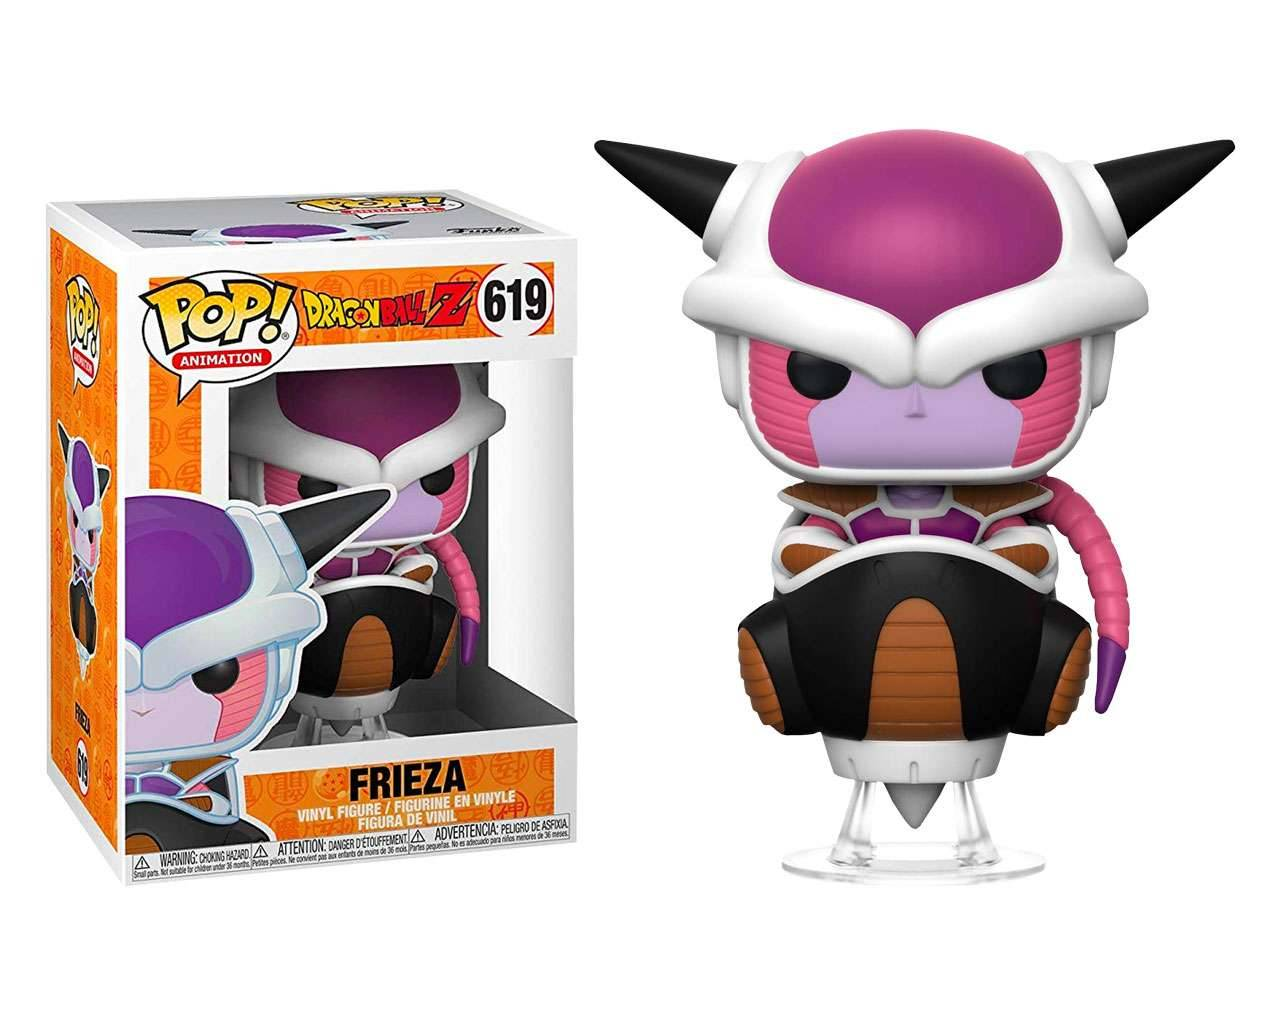 Frieza (Hoverchair) Pop! Vinyl